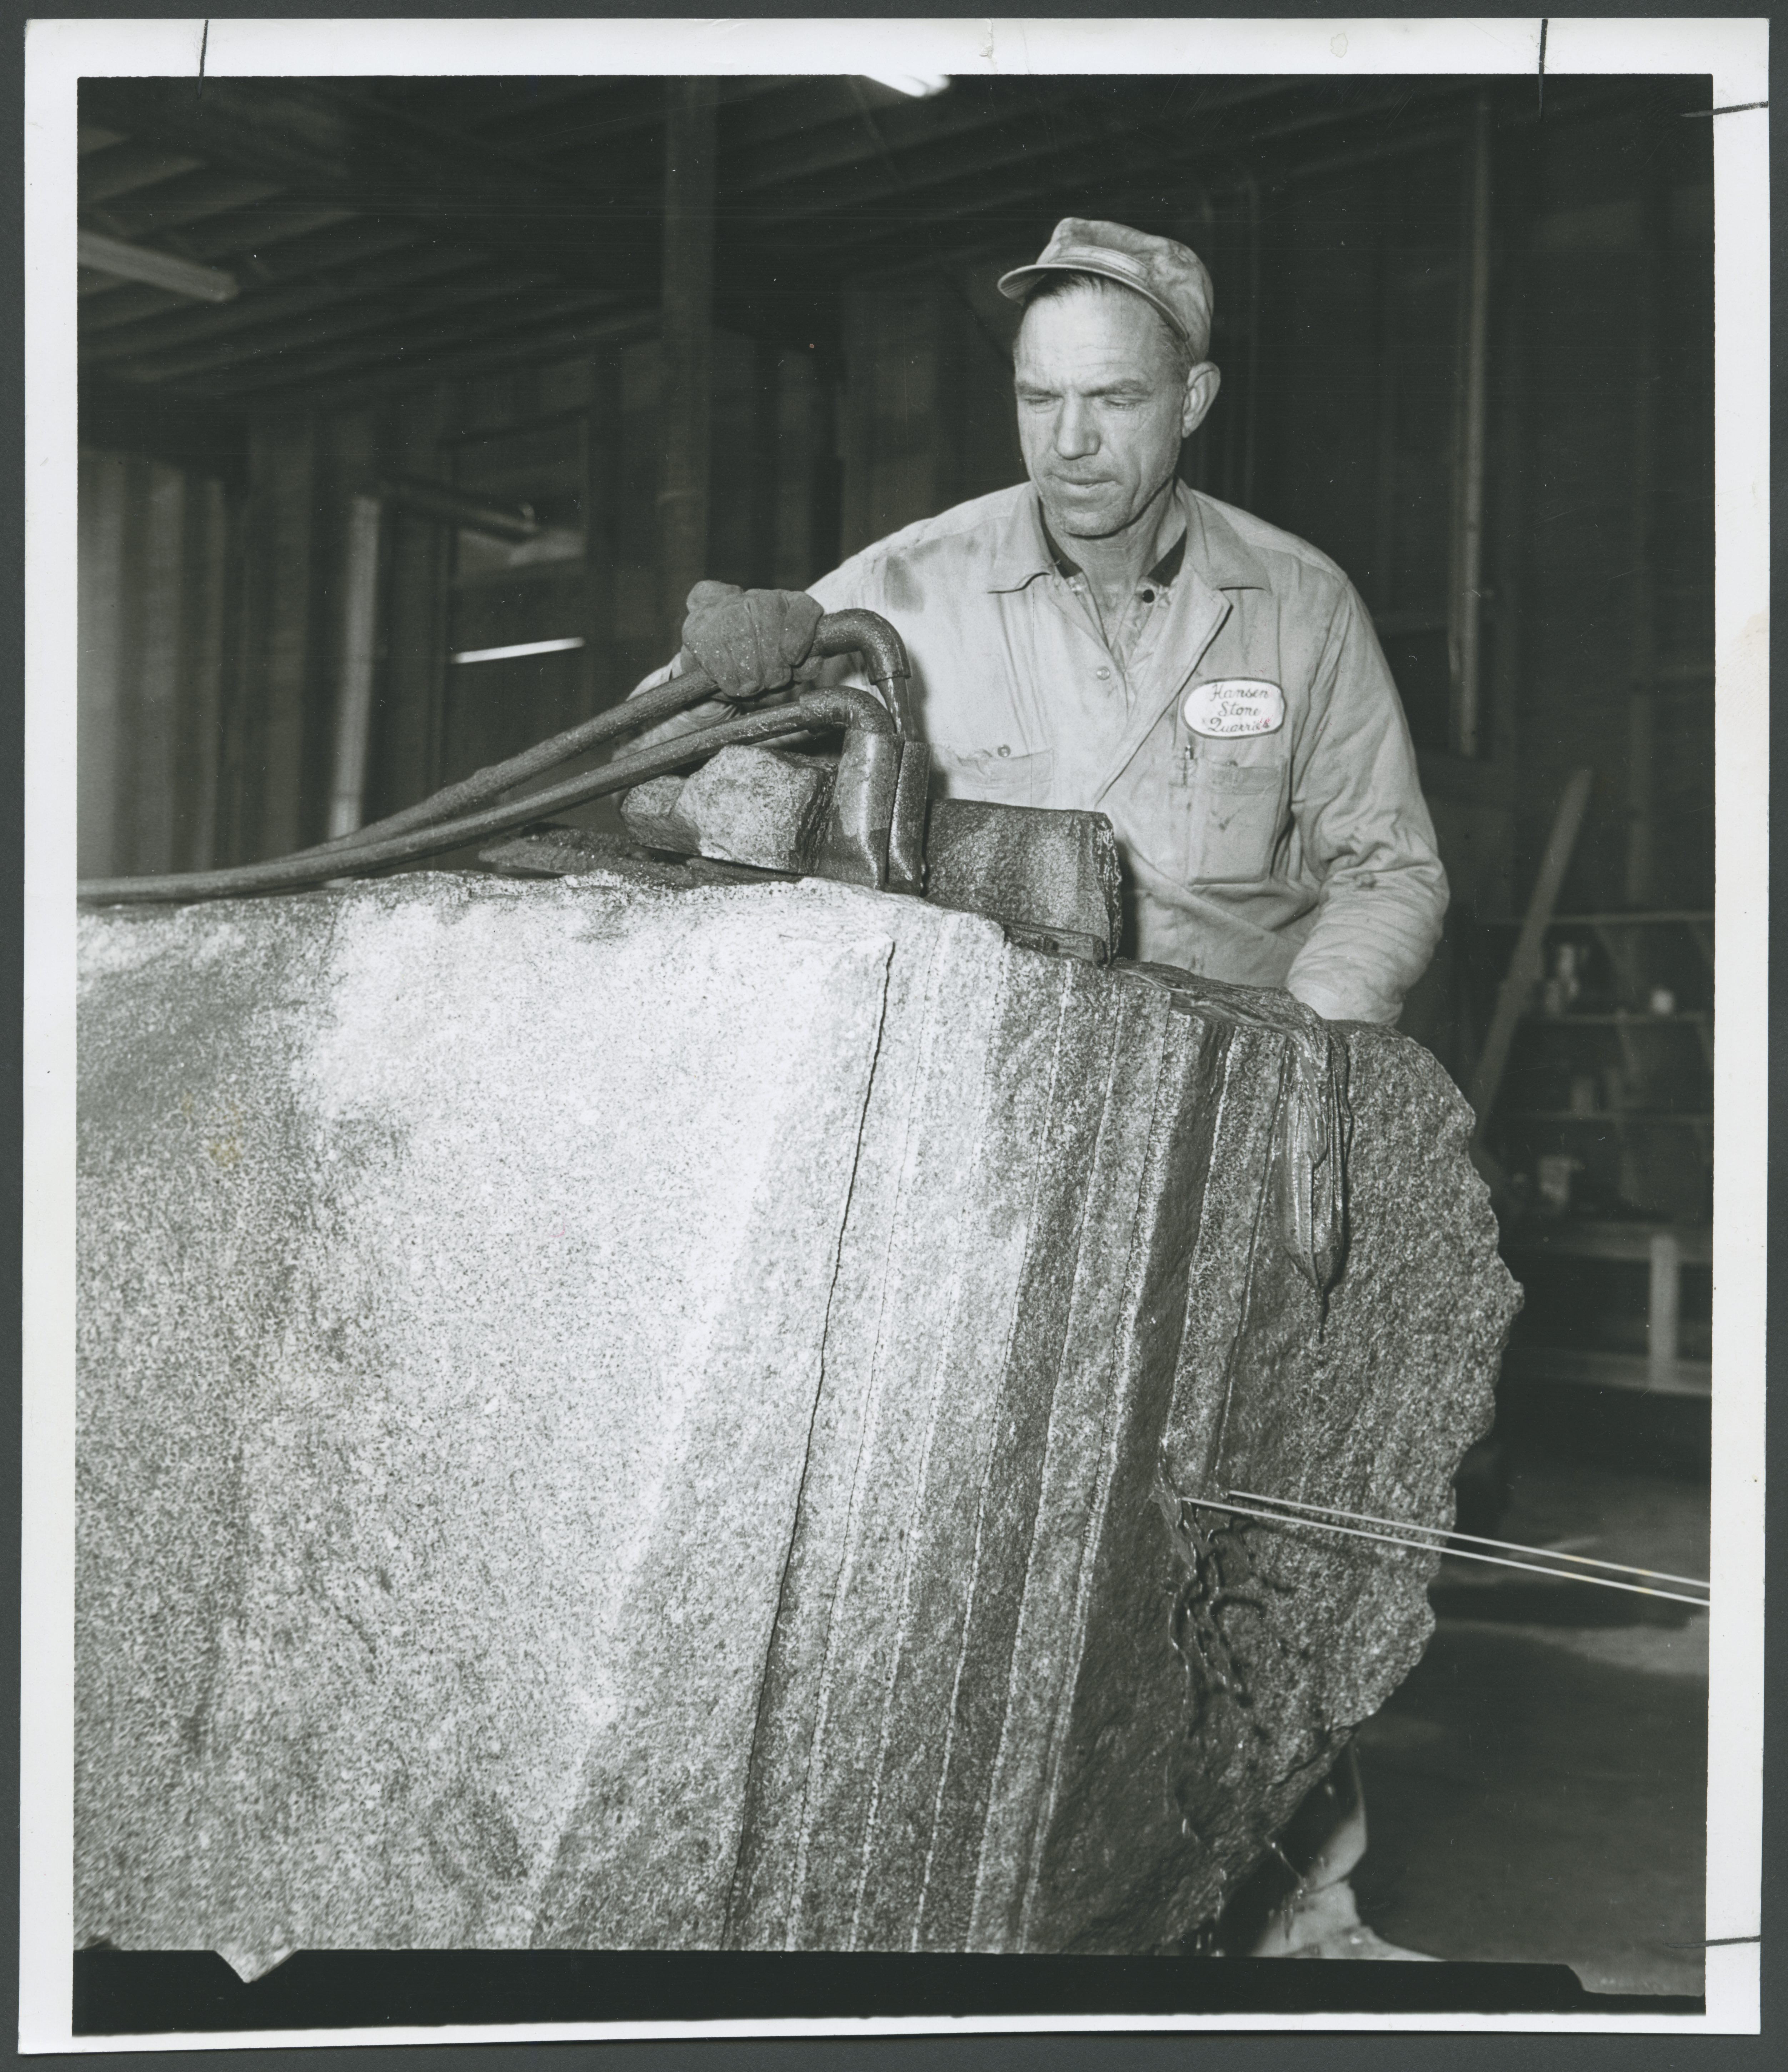 Wilford Hansen checks the water being used in cutting huge piece of granite for temple projects on Jan. 28, 1963. Saw is at lower right.